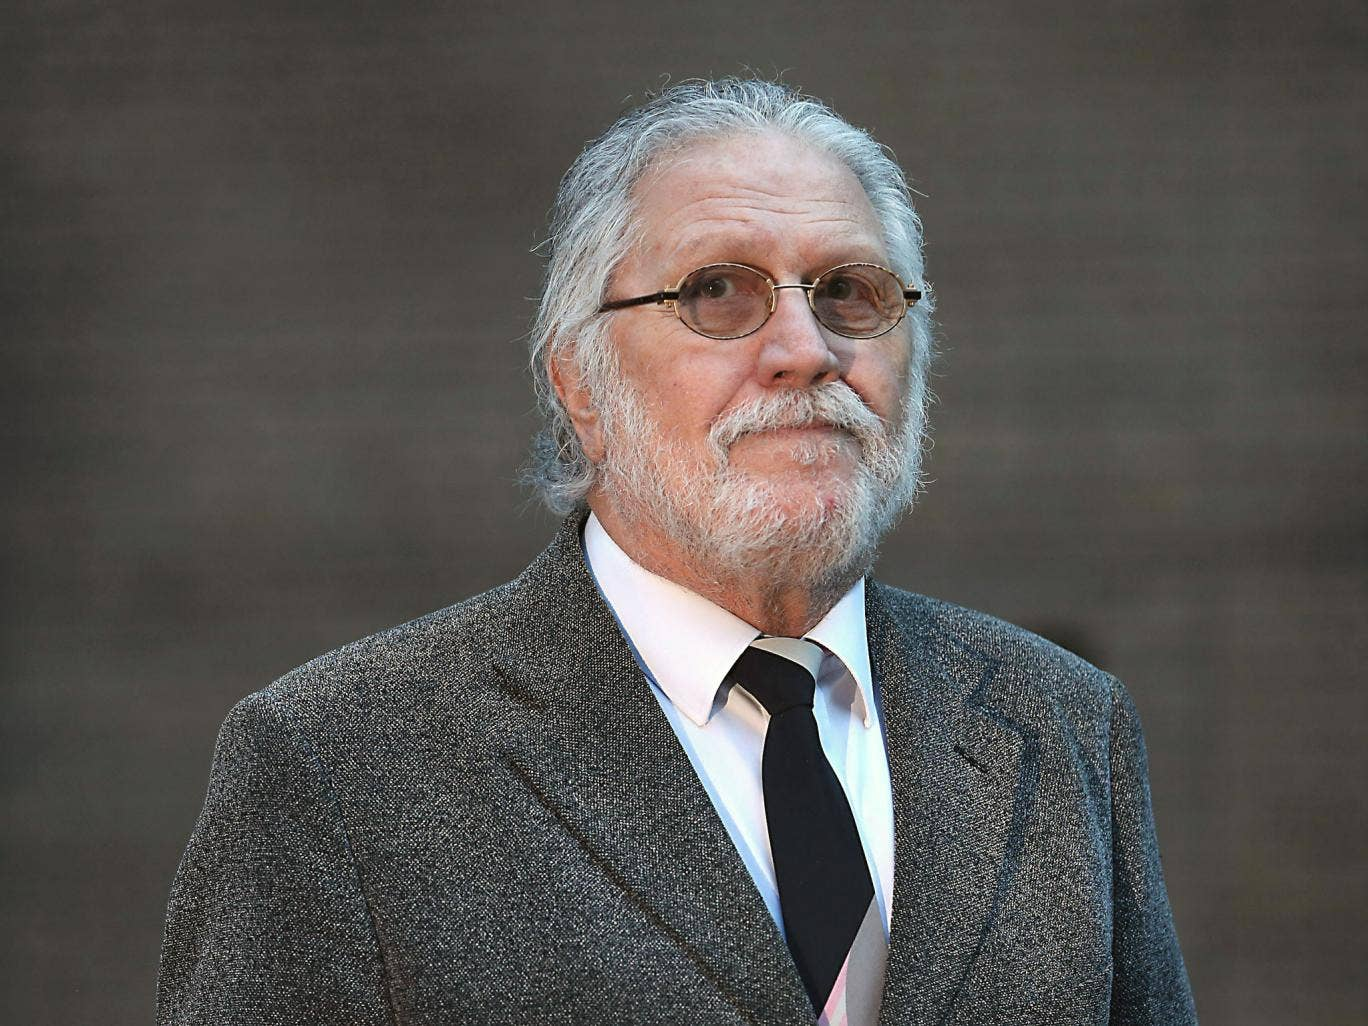 Radio presenter Dave Lee Travis arrives at Southwark Crown Court on 16 January, charged with 14 counts of indecent assault and one of sexual assault.